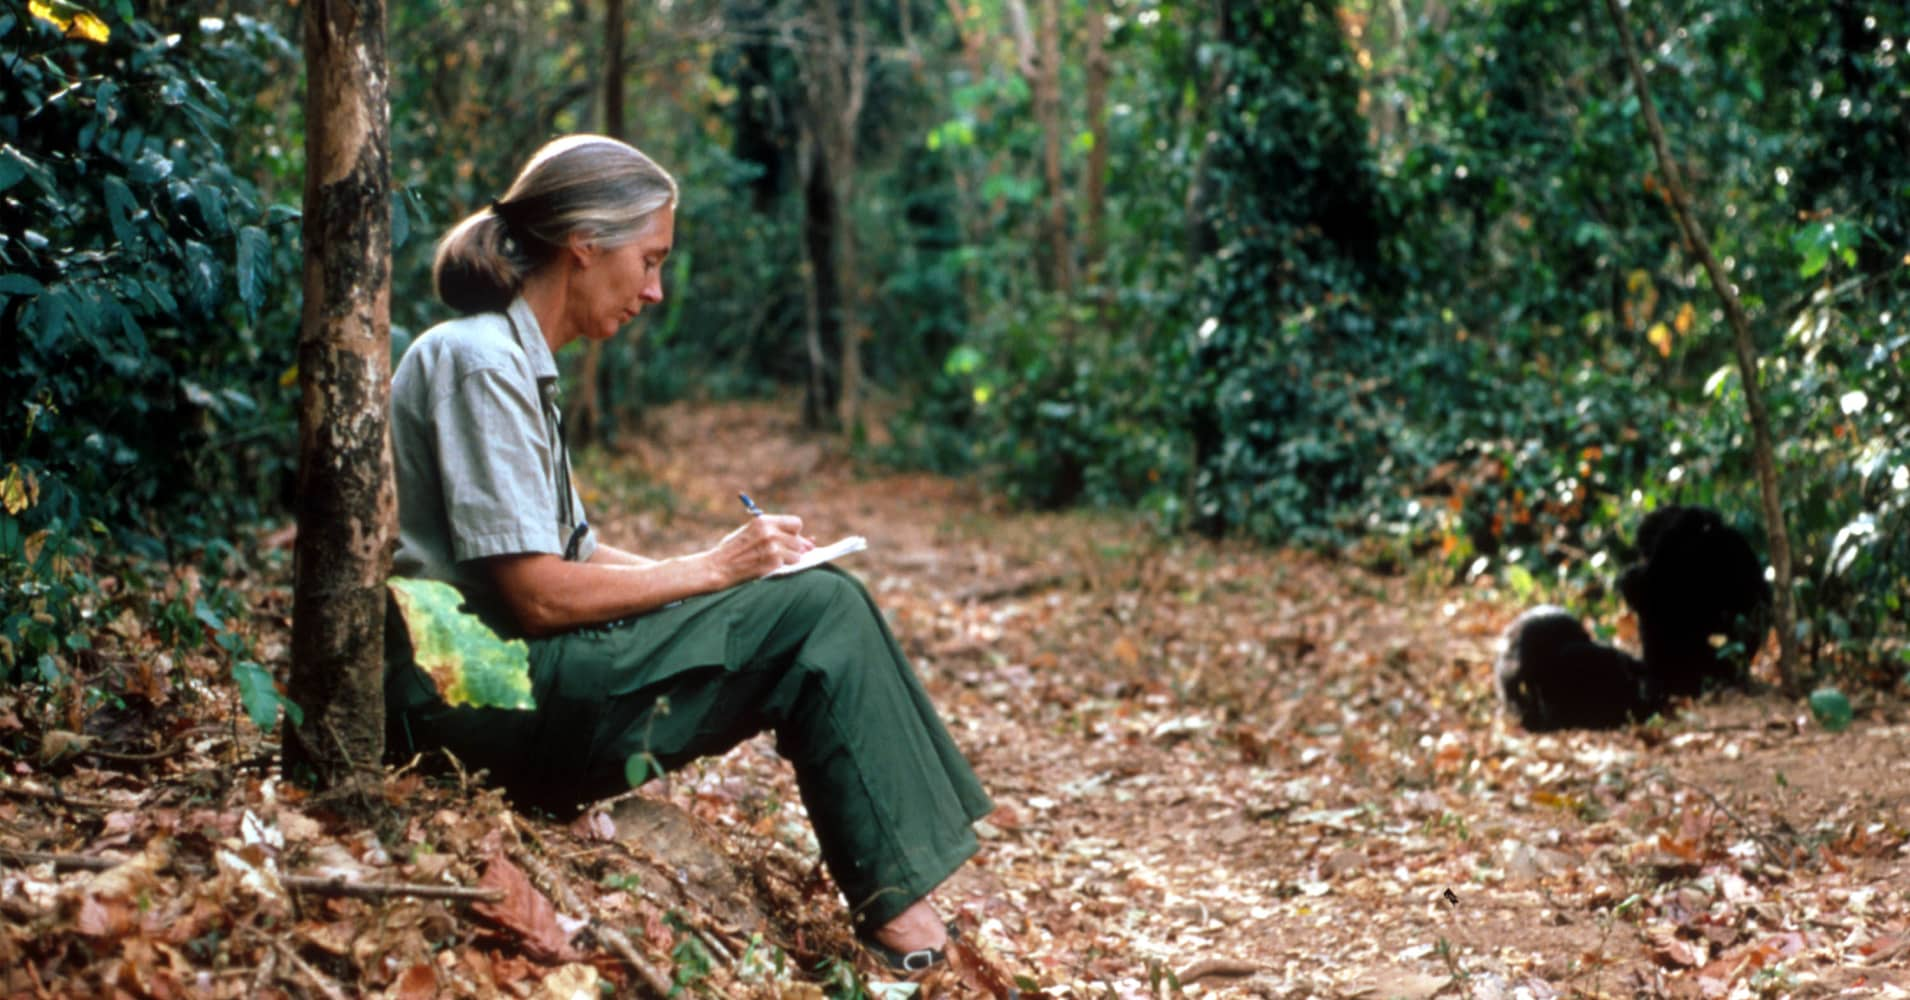 Jane Goodall studies the behavior of a chimpanzee during her research February 15, 1987 in Tanzania.